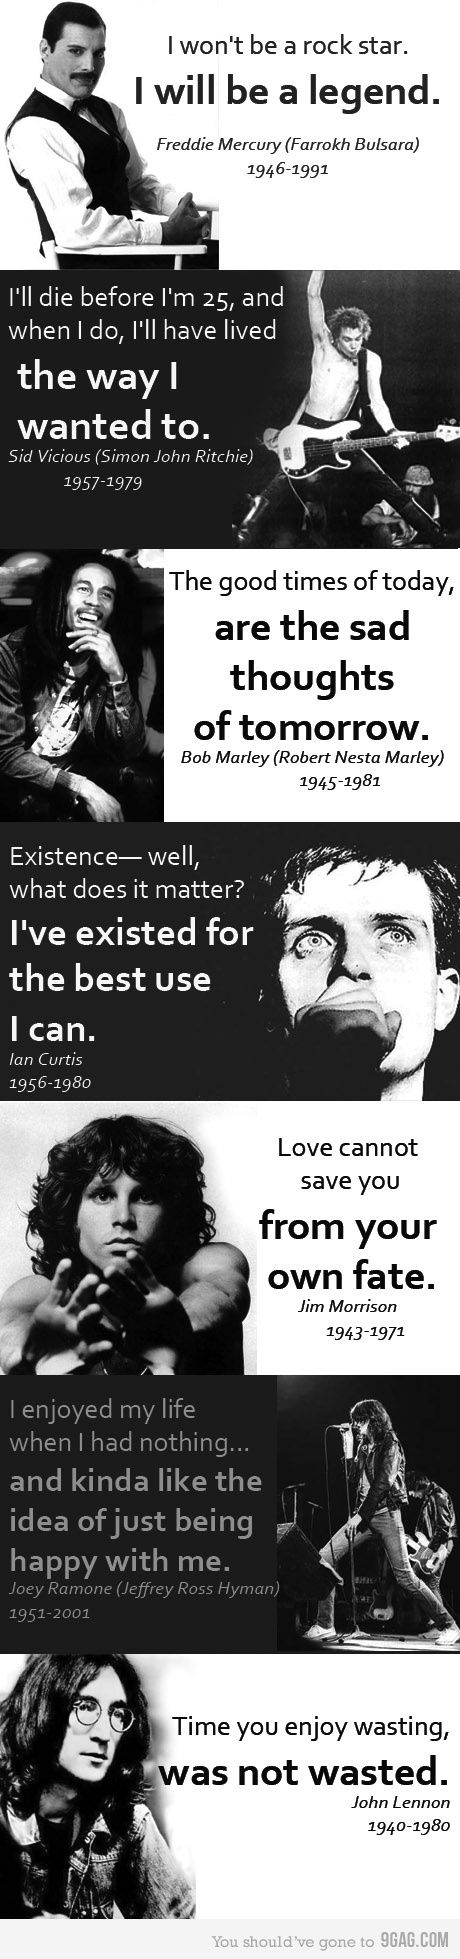 Quotes from the famous who were gone too soon...